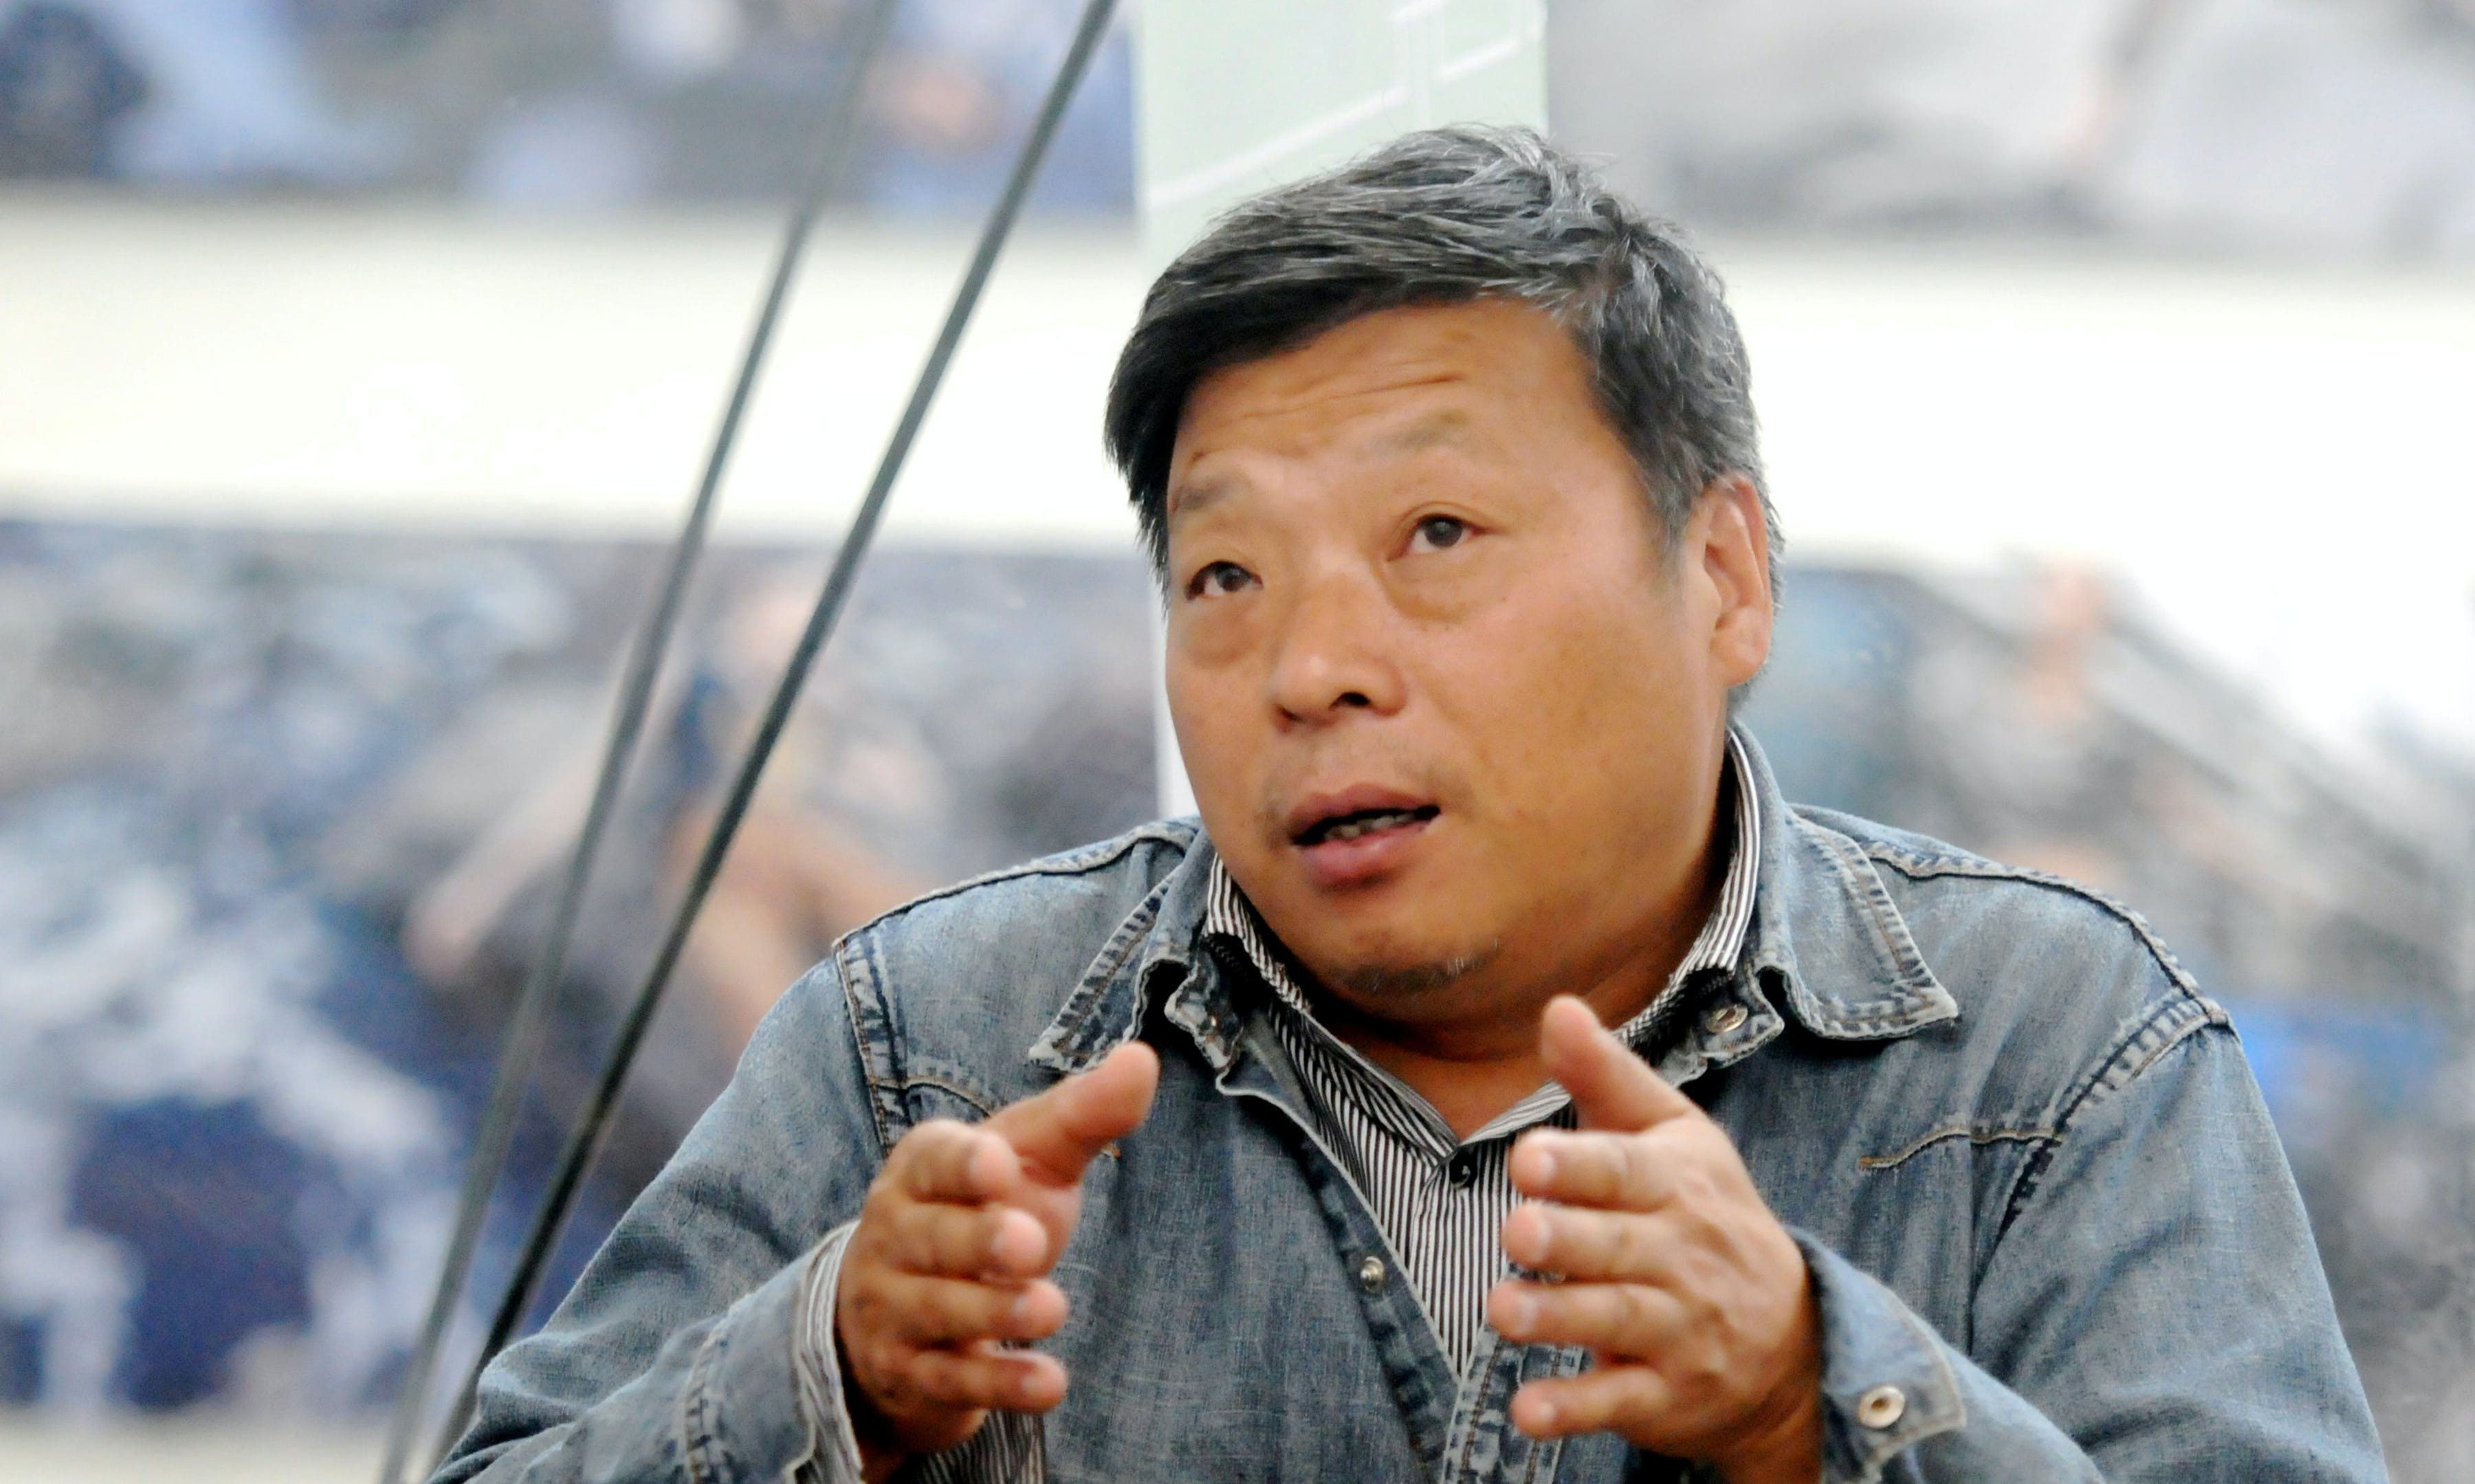 OPINION: Missing Photographer Is China's Latest Victim of Arbitrary Detention